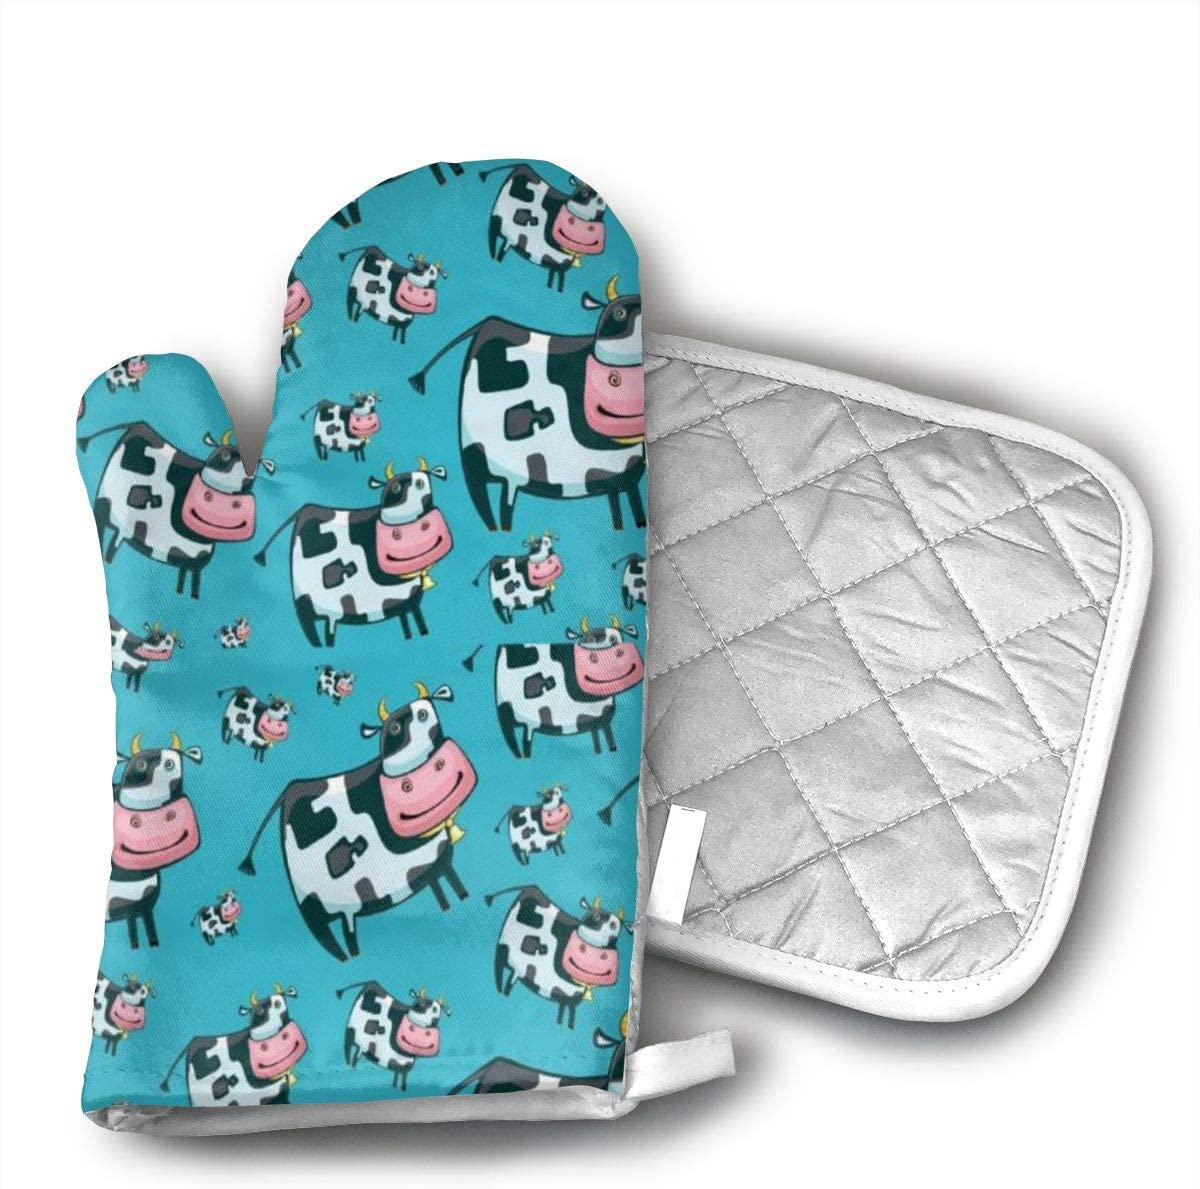 not Cartoon Cow Oven Mitts Microwave,Kitchen Glove Heat Resistant Cook Gloves Mitts for Cooking,Baking,Barbecue Potholder